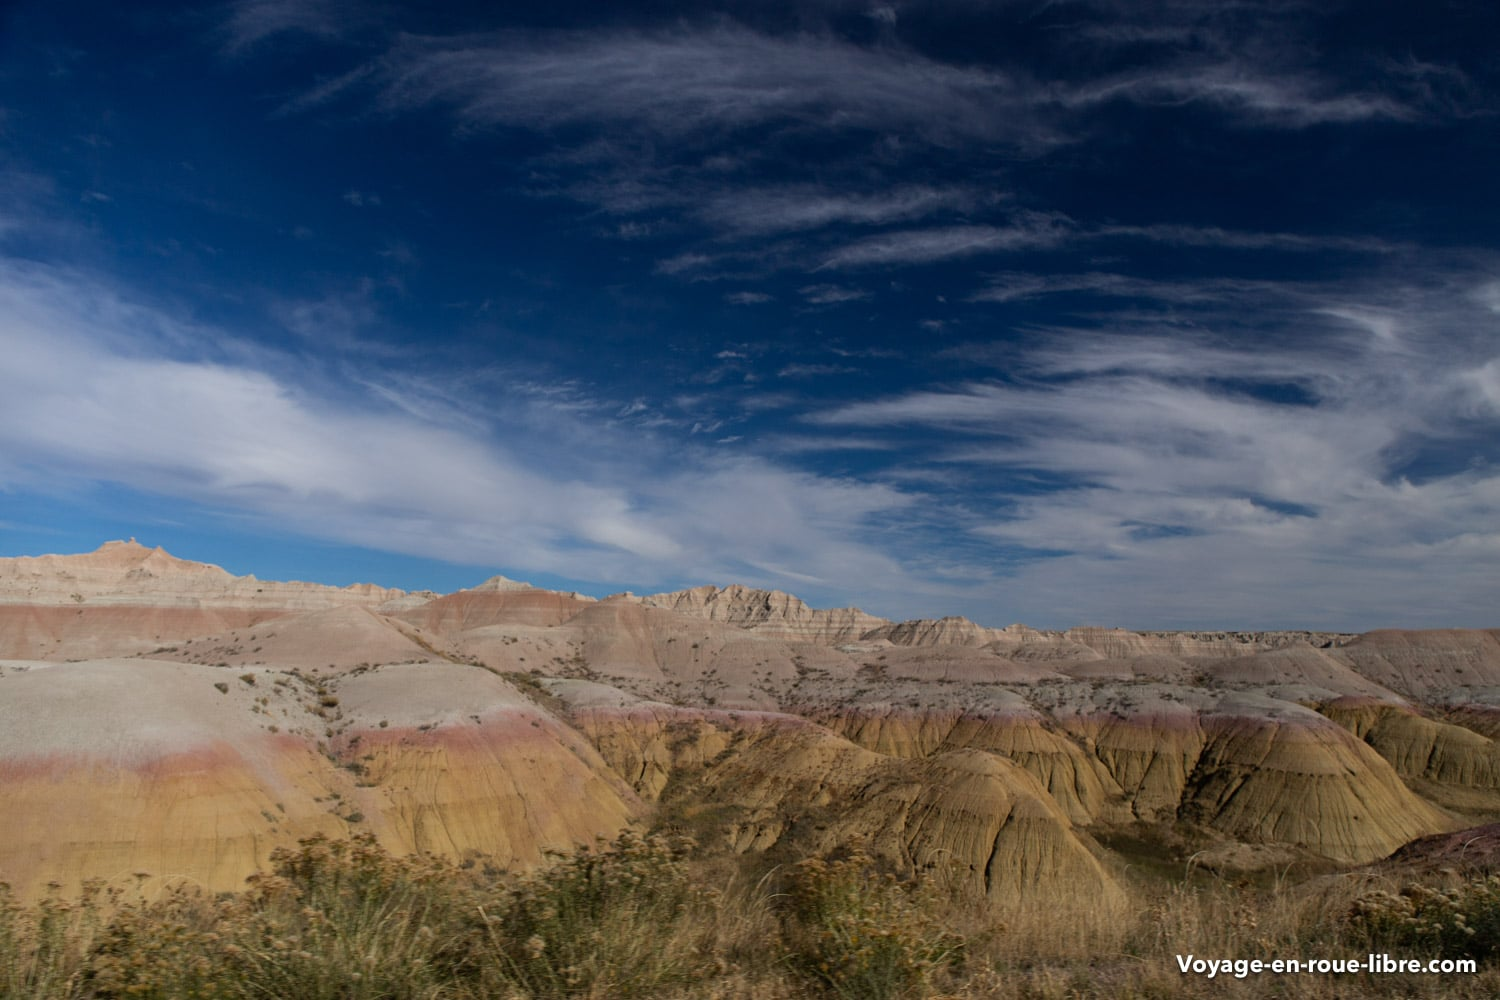 Parc national des Badlands - South Dakota